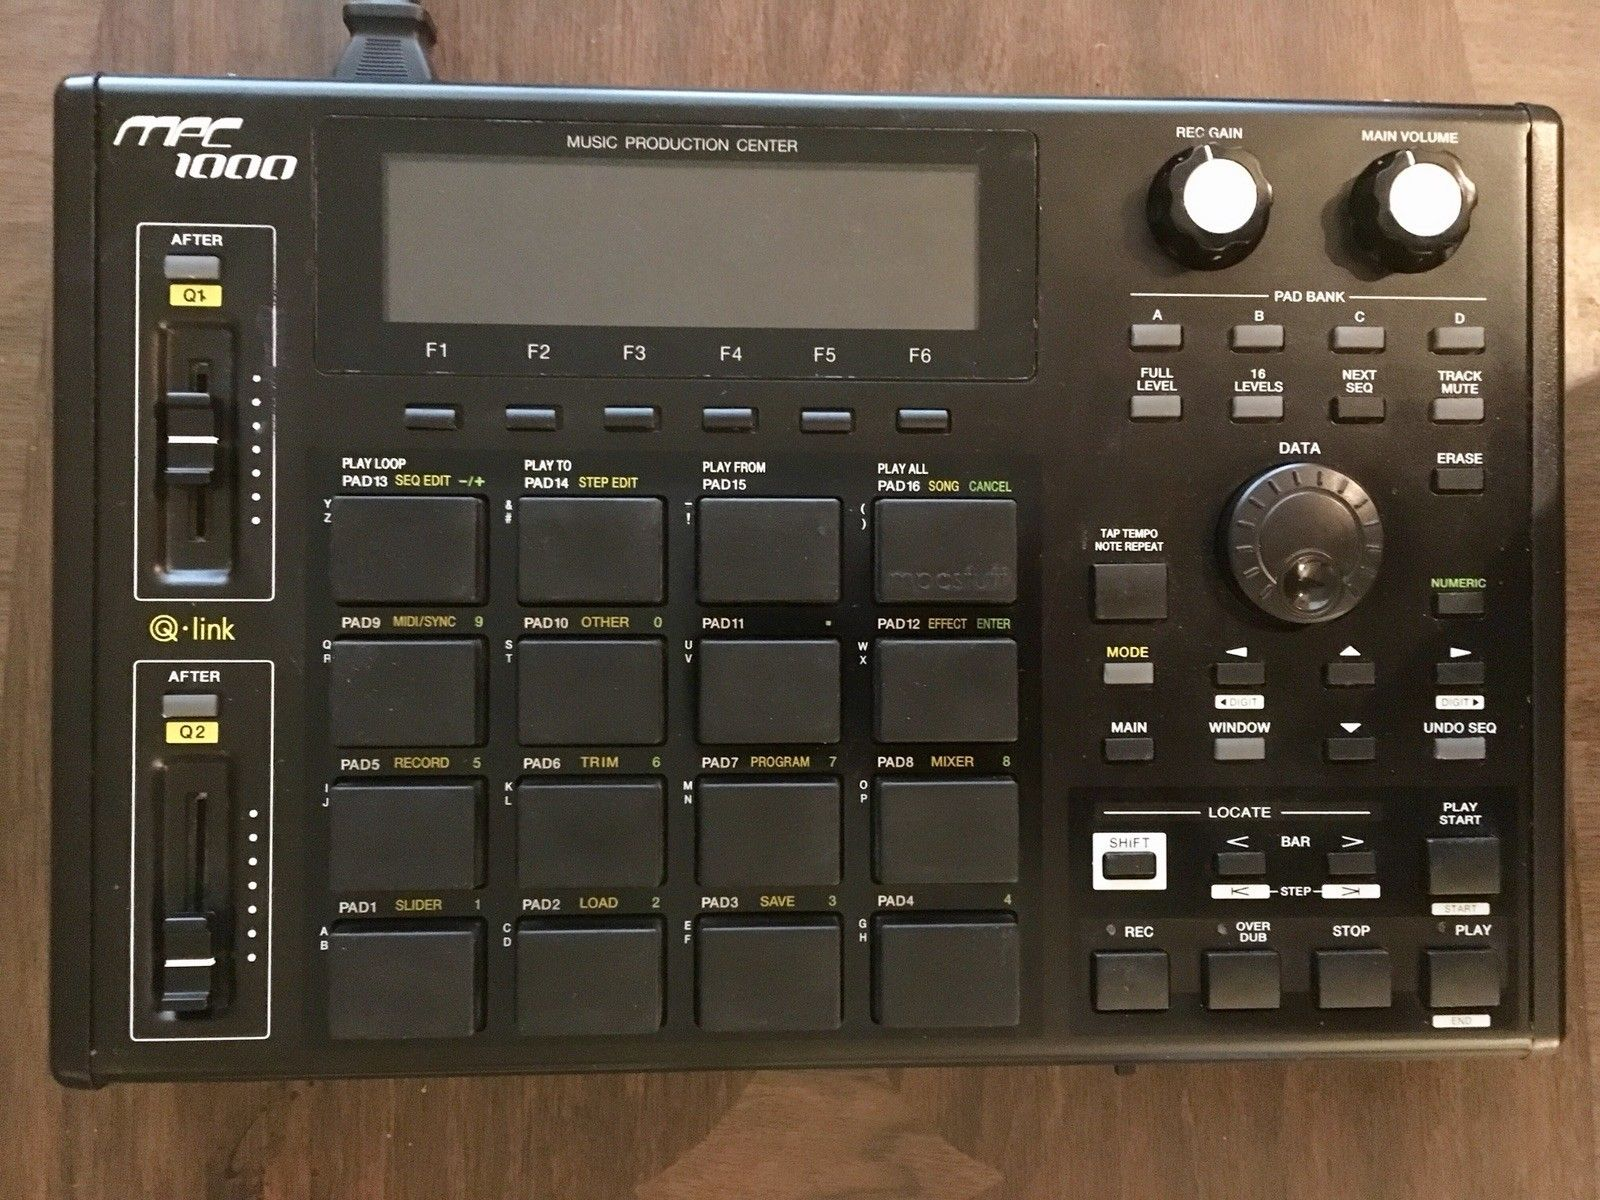 MPCHunter » Blog Archive » Akai MPC 1000 with 128MB RAM